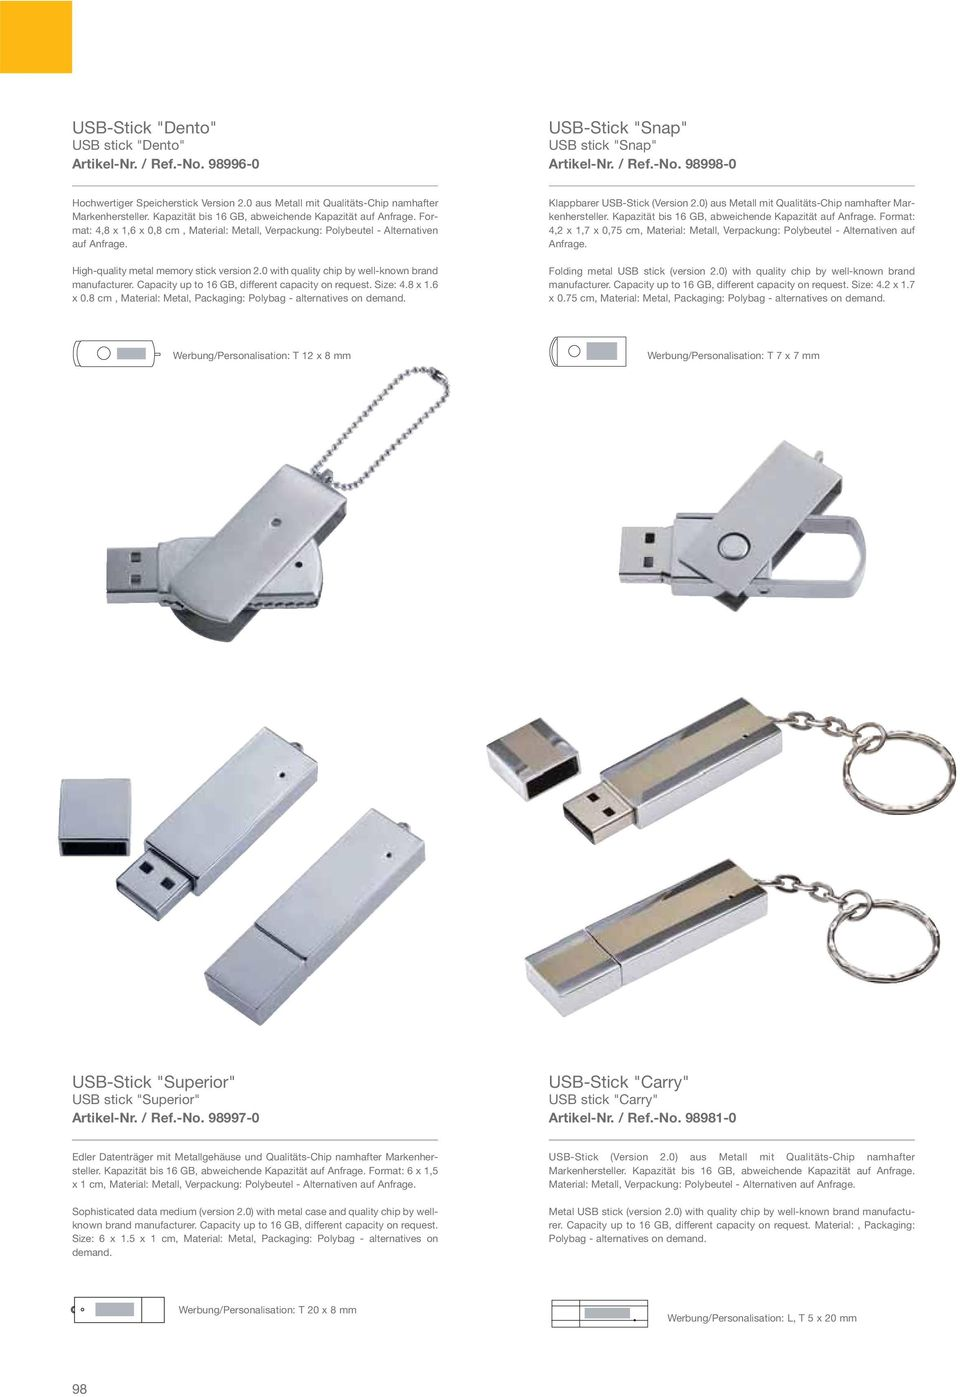 Format: 4,8 x 1,6 x 0,8 cm, Material: Metall, Verpackung: Polybeutel - Alternativen auf Anfrage. High-quality metal memory stick version 2.0 with quality chip by well-known brand manufacturer.